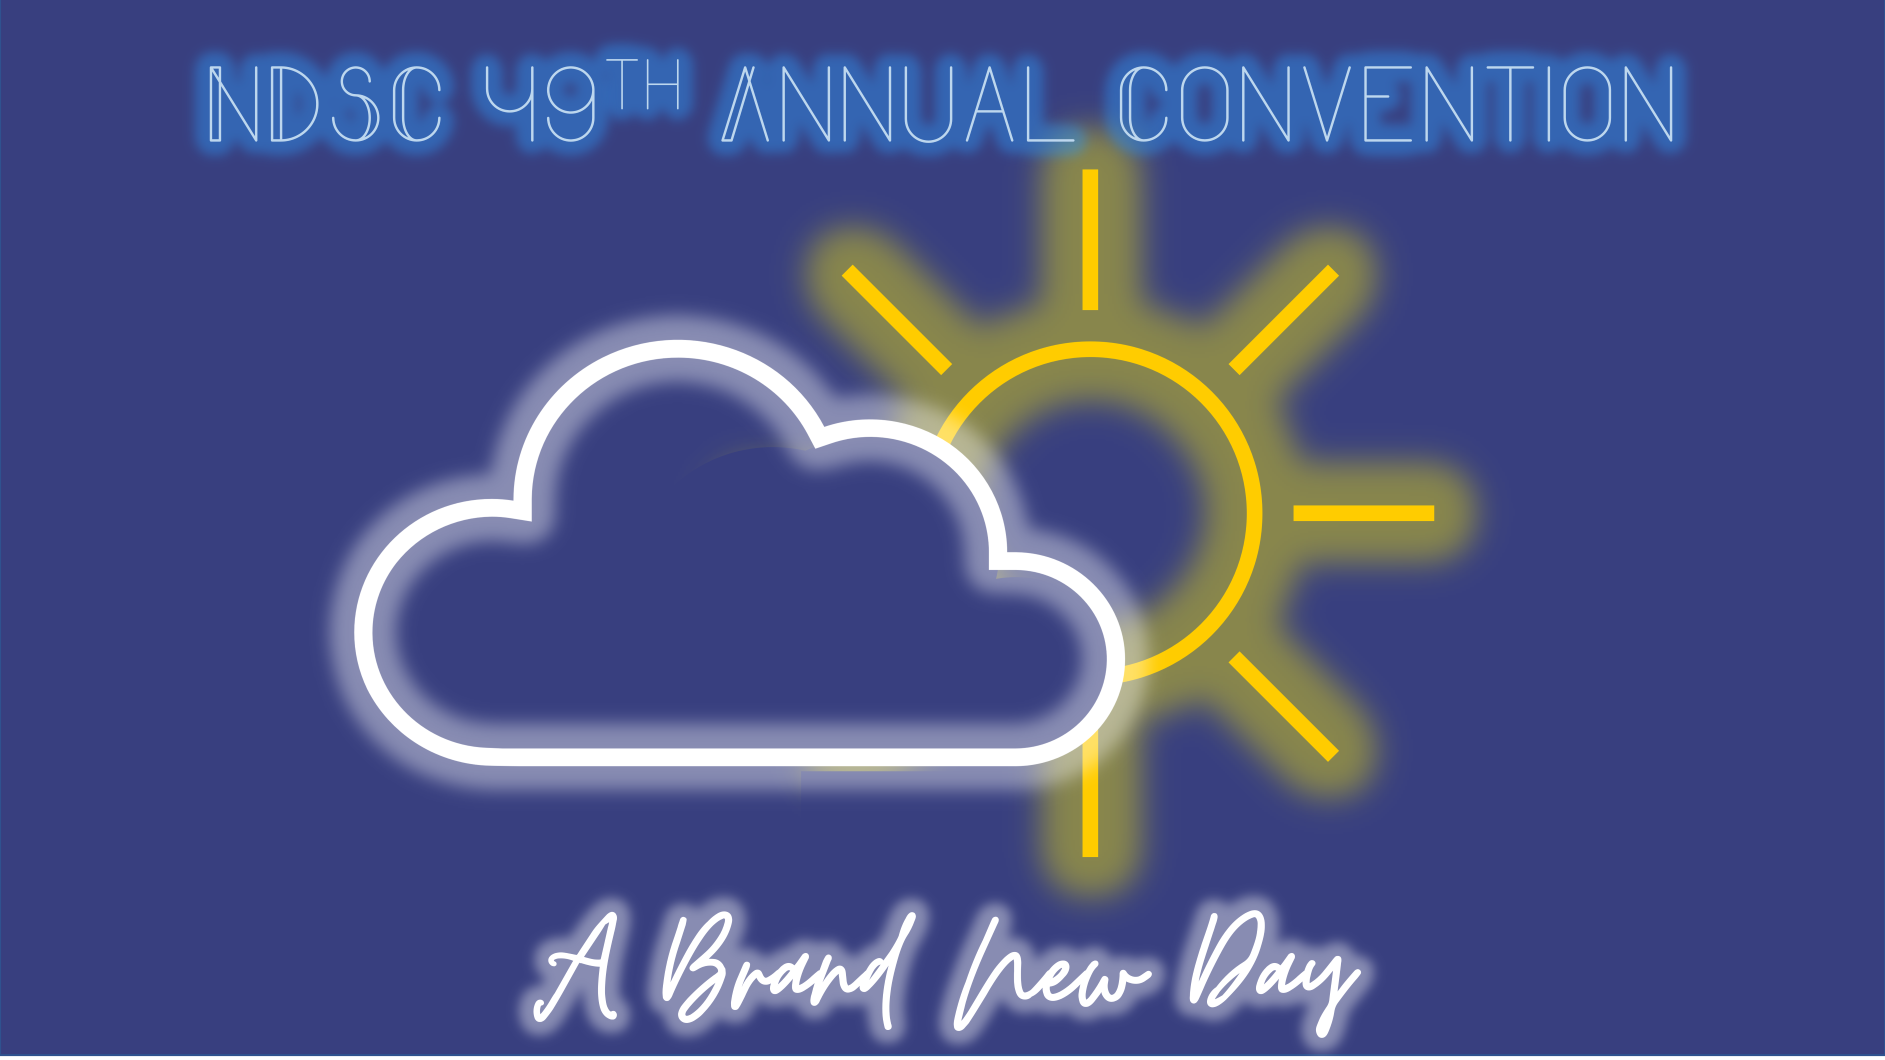 2021 Convention_A Brand New Day logo